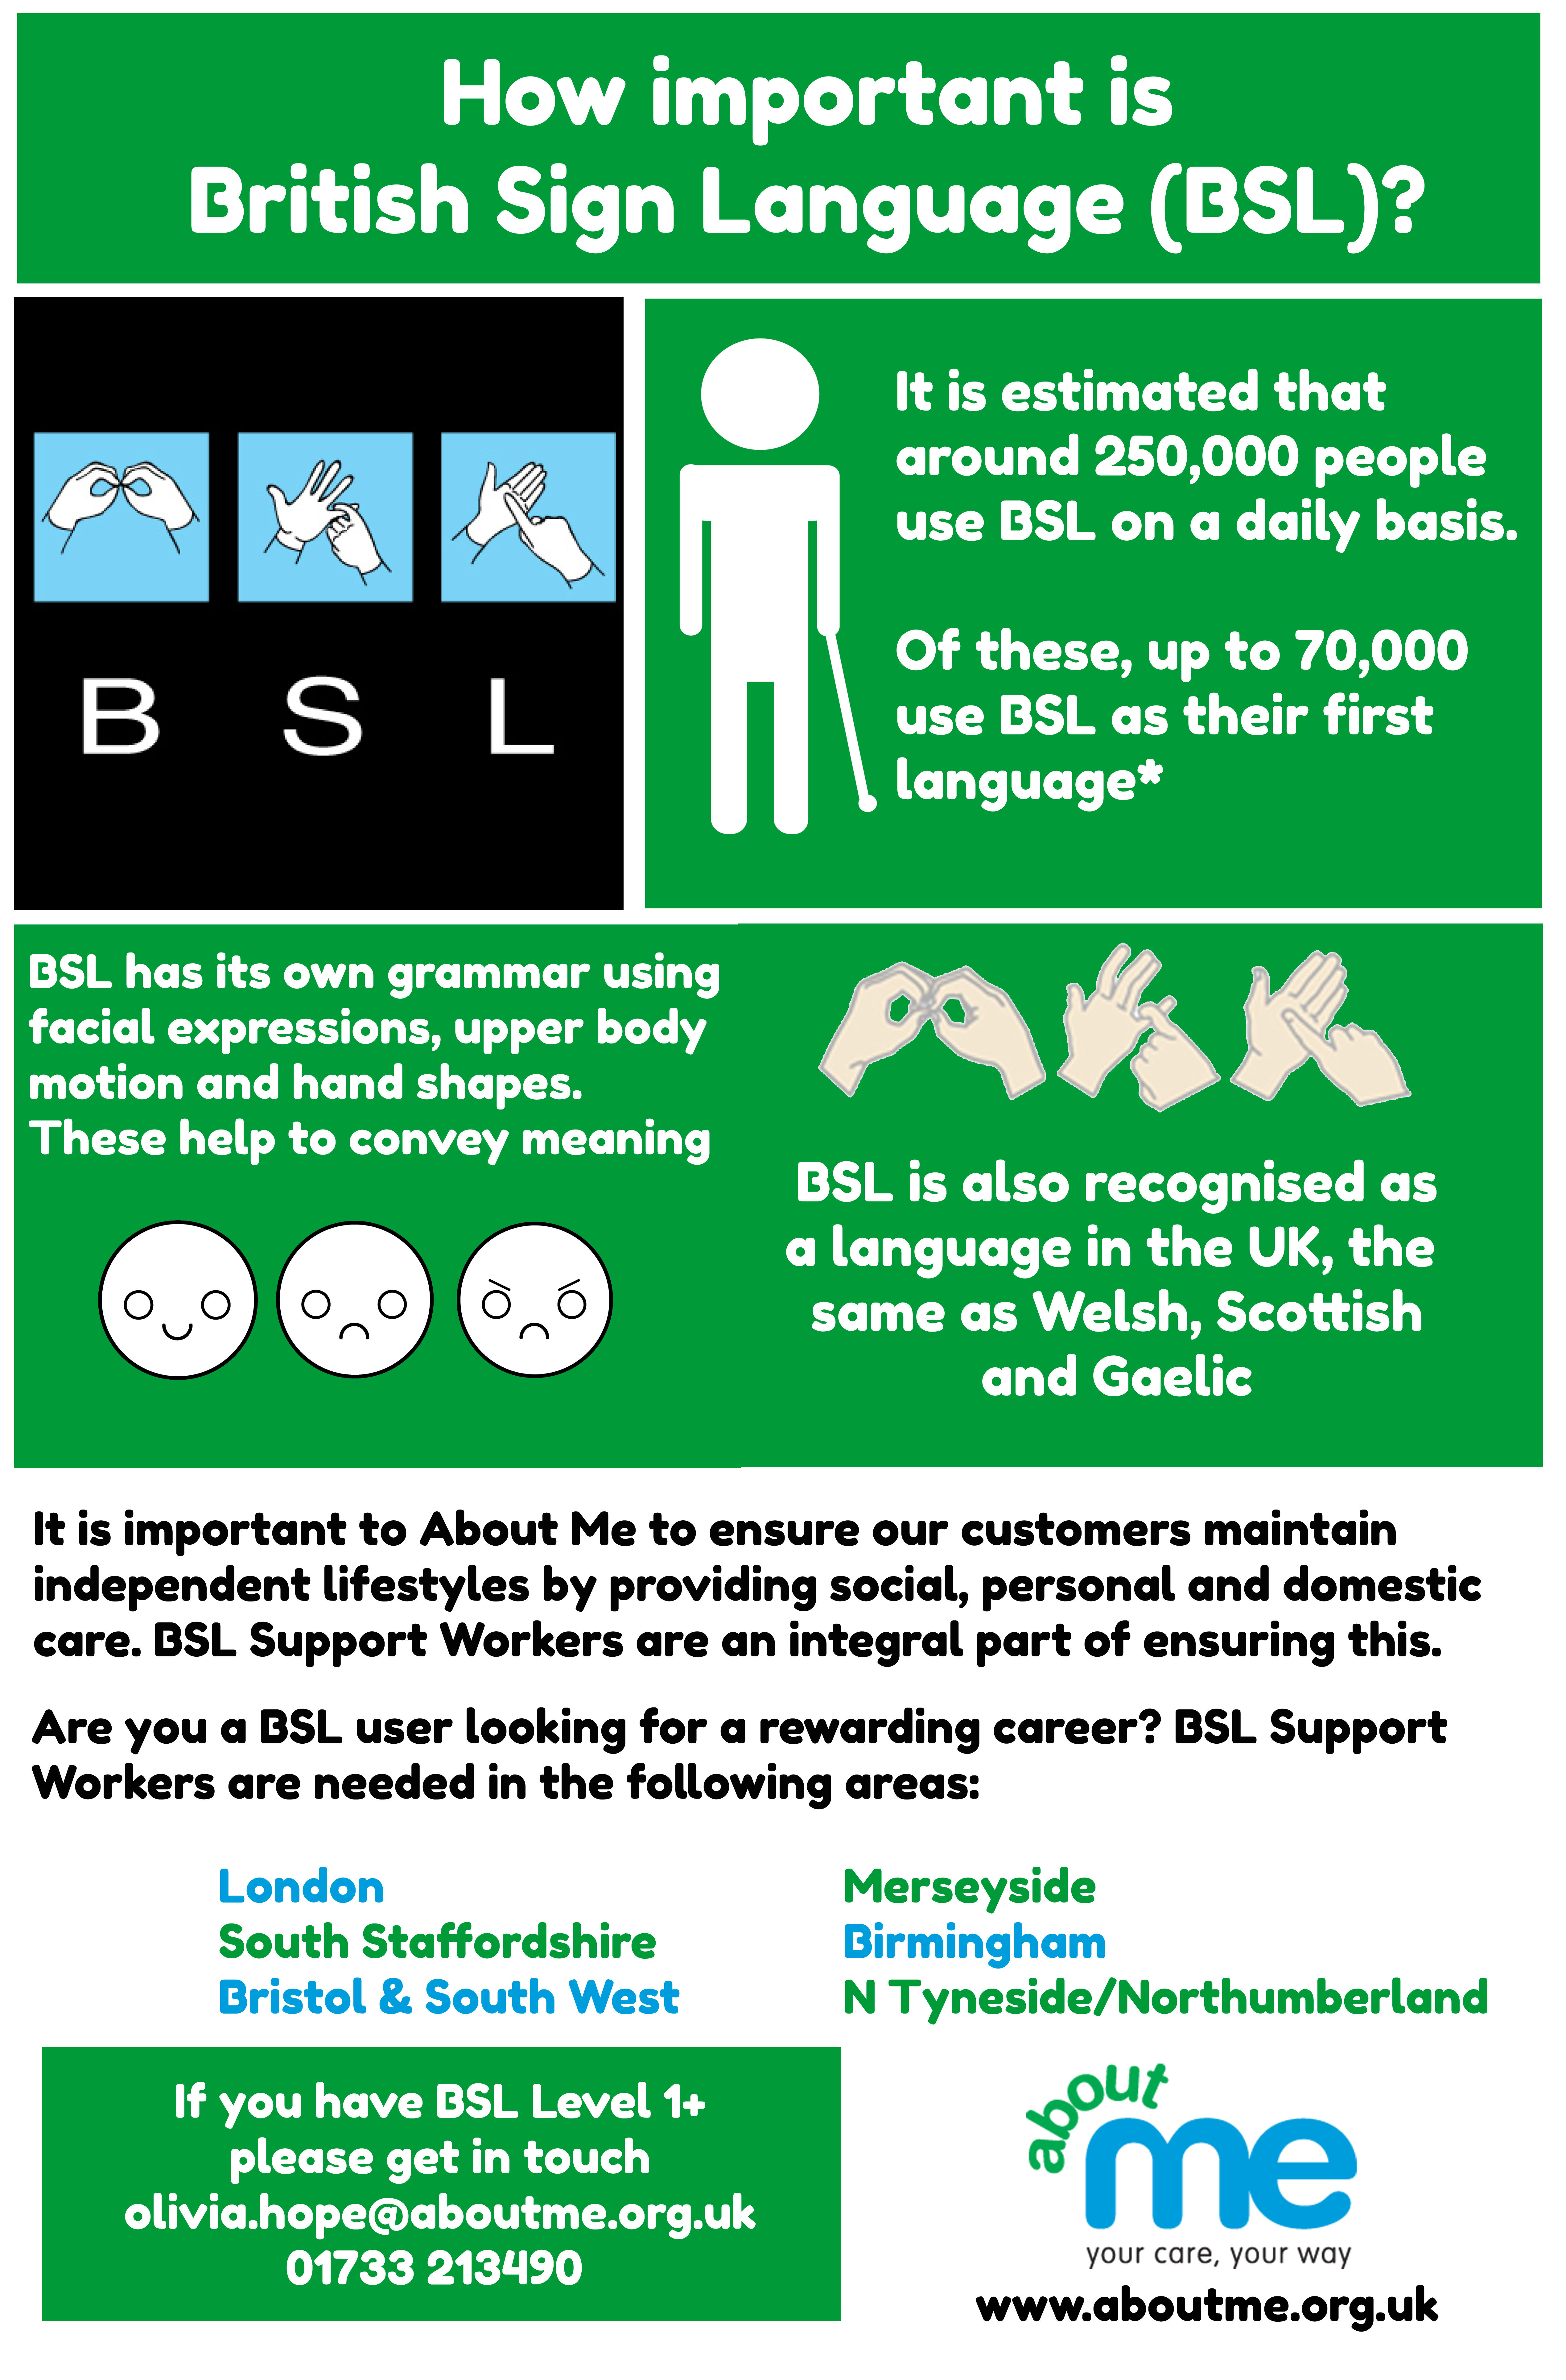 Bsl Support Workers Needed Across The Uk